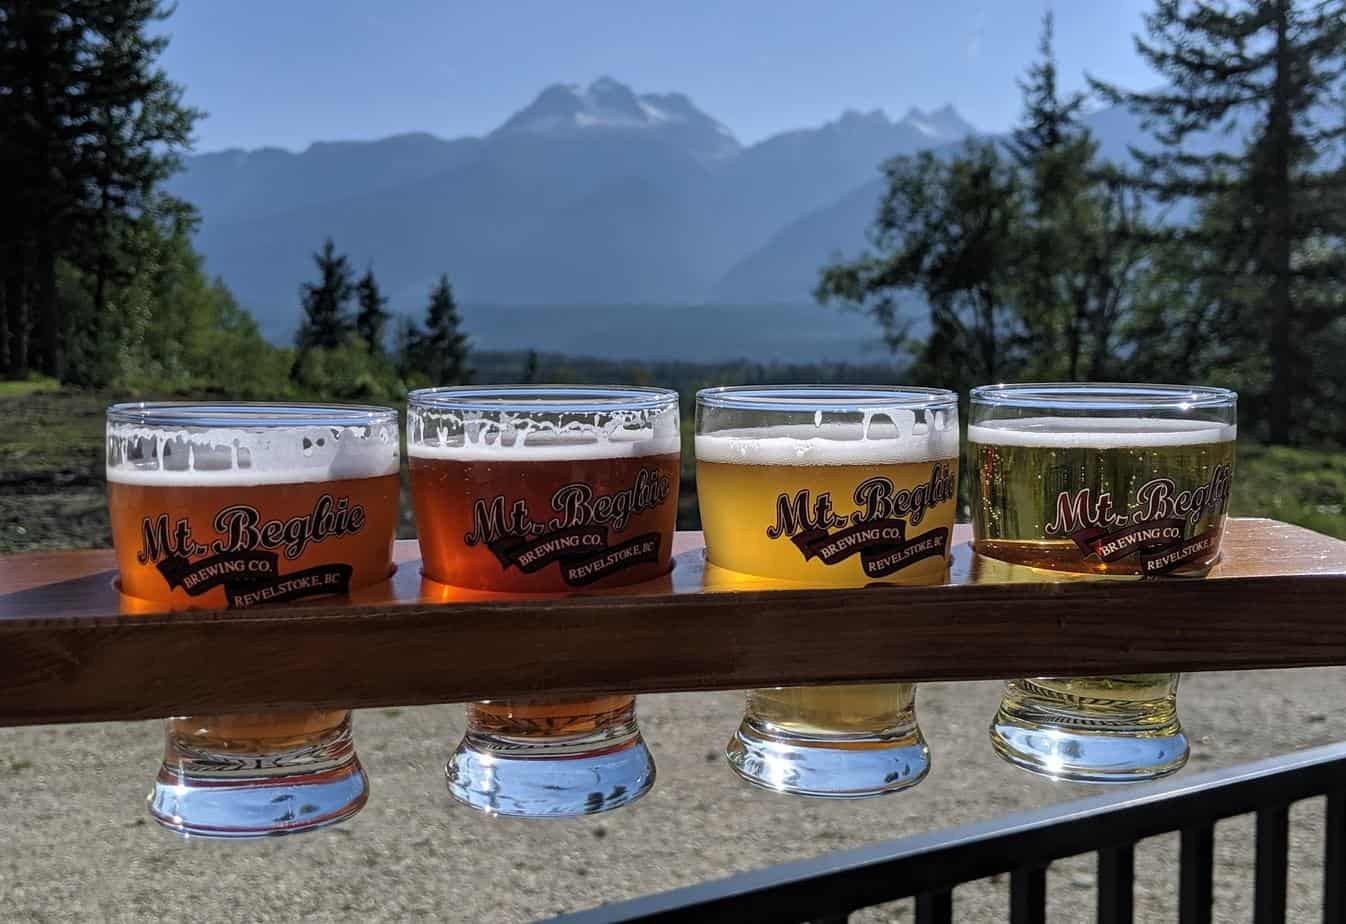 Four tasting glasses of beer in front of mountain view, Mt Begbie Brewing Company